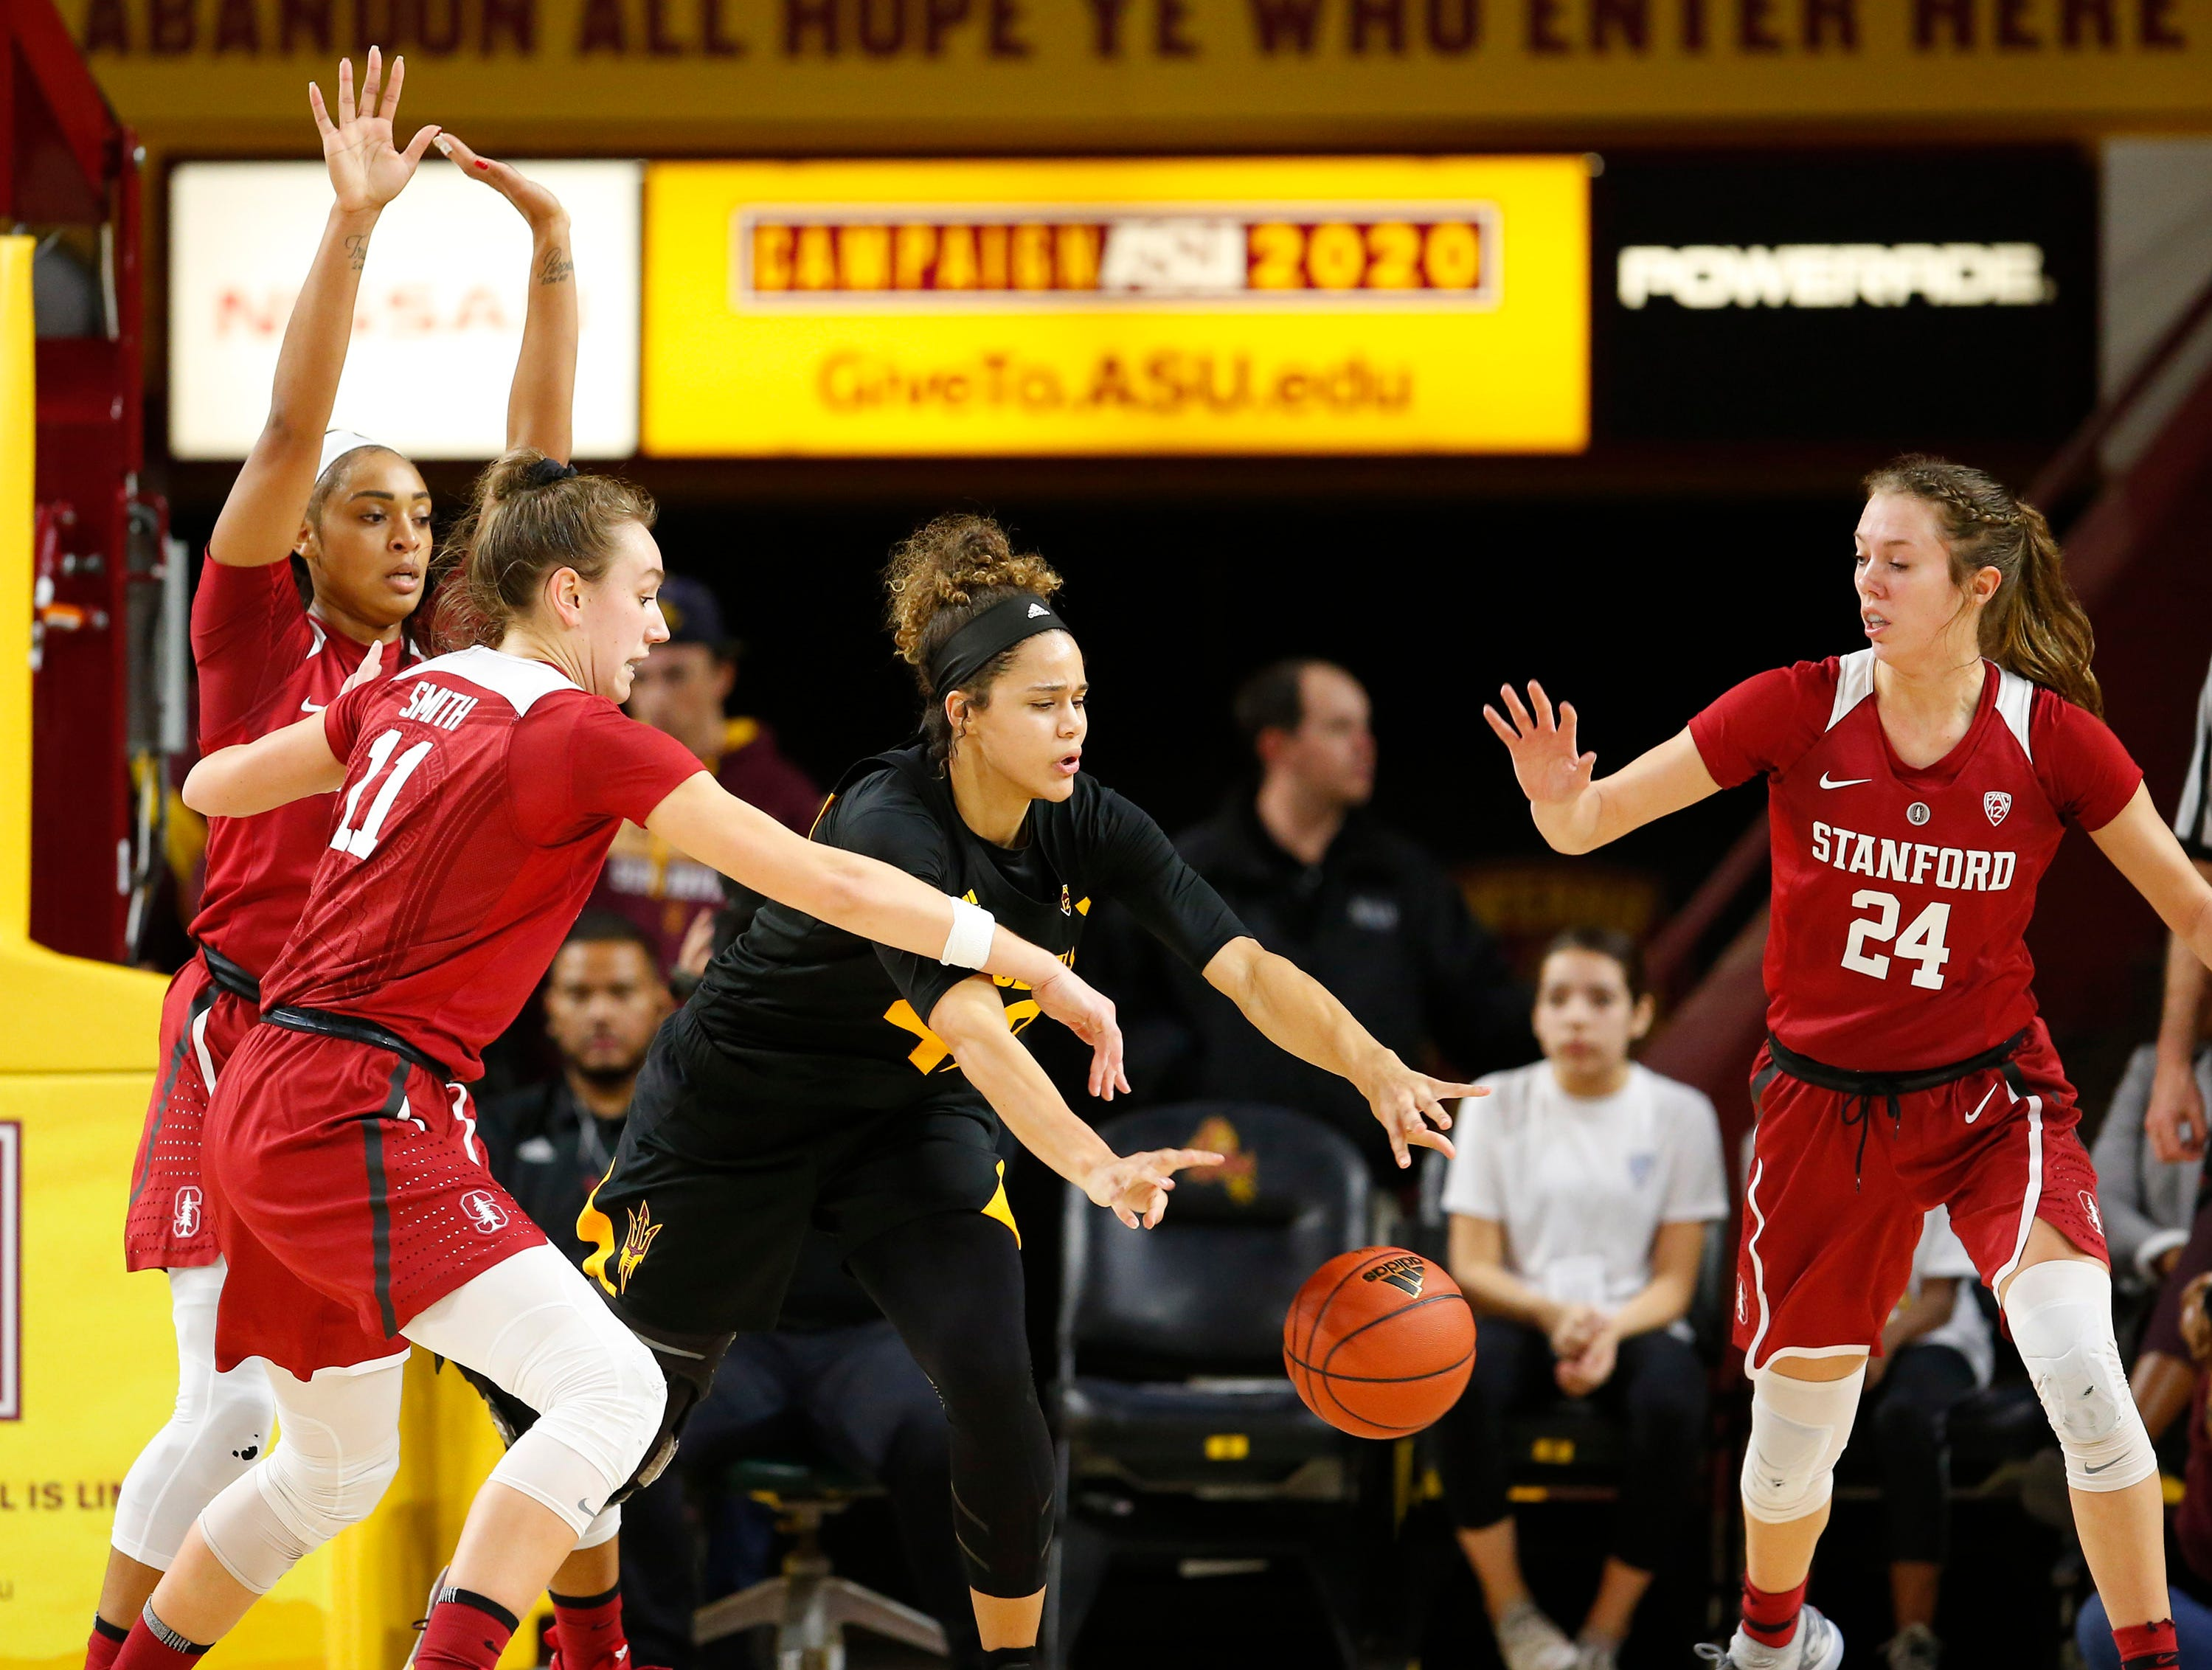 Arizona State University Kianna Ibis (42) passes the ball while being guarded by Stanford University Alanna Smith (11) and Lacie Hull (24) during a women's basketball game at Well Fargo Arena in Tempe on January 11.